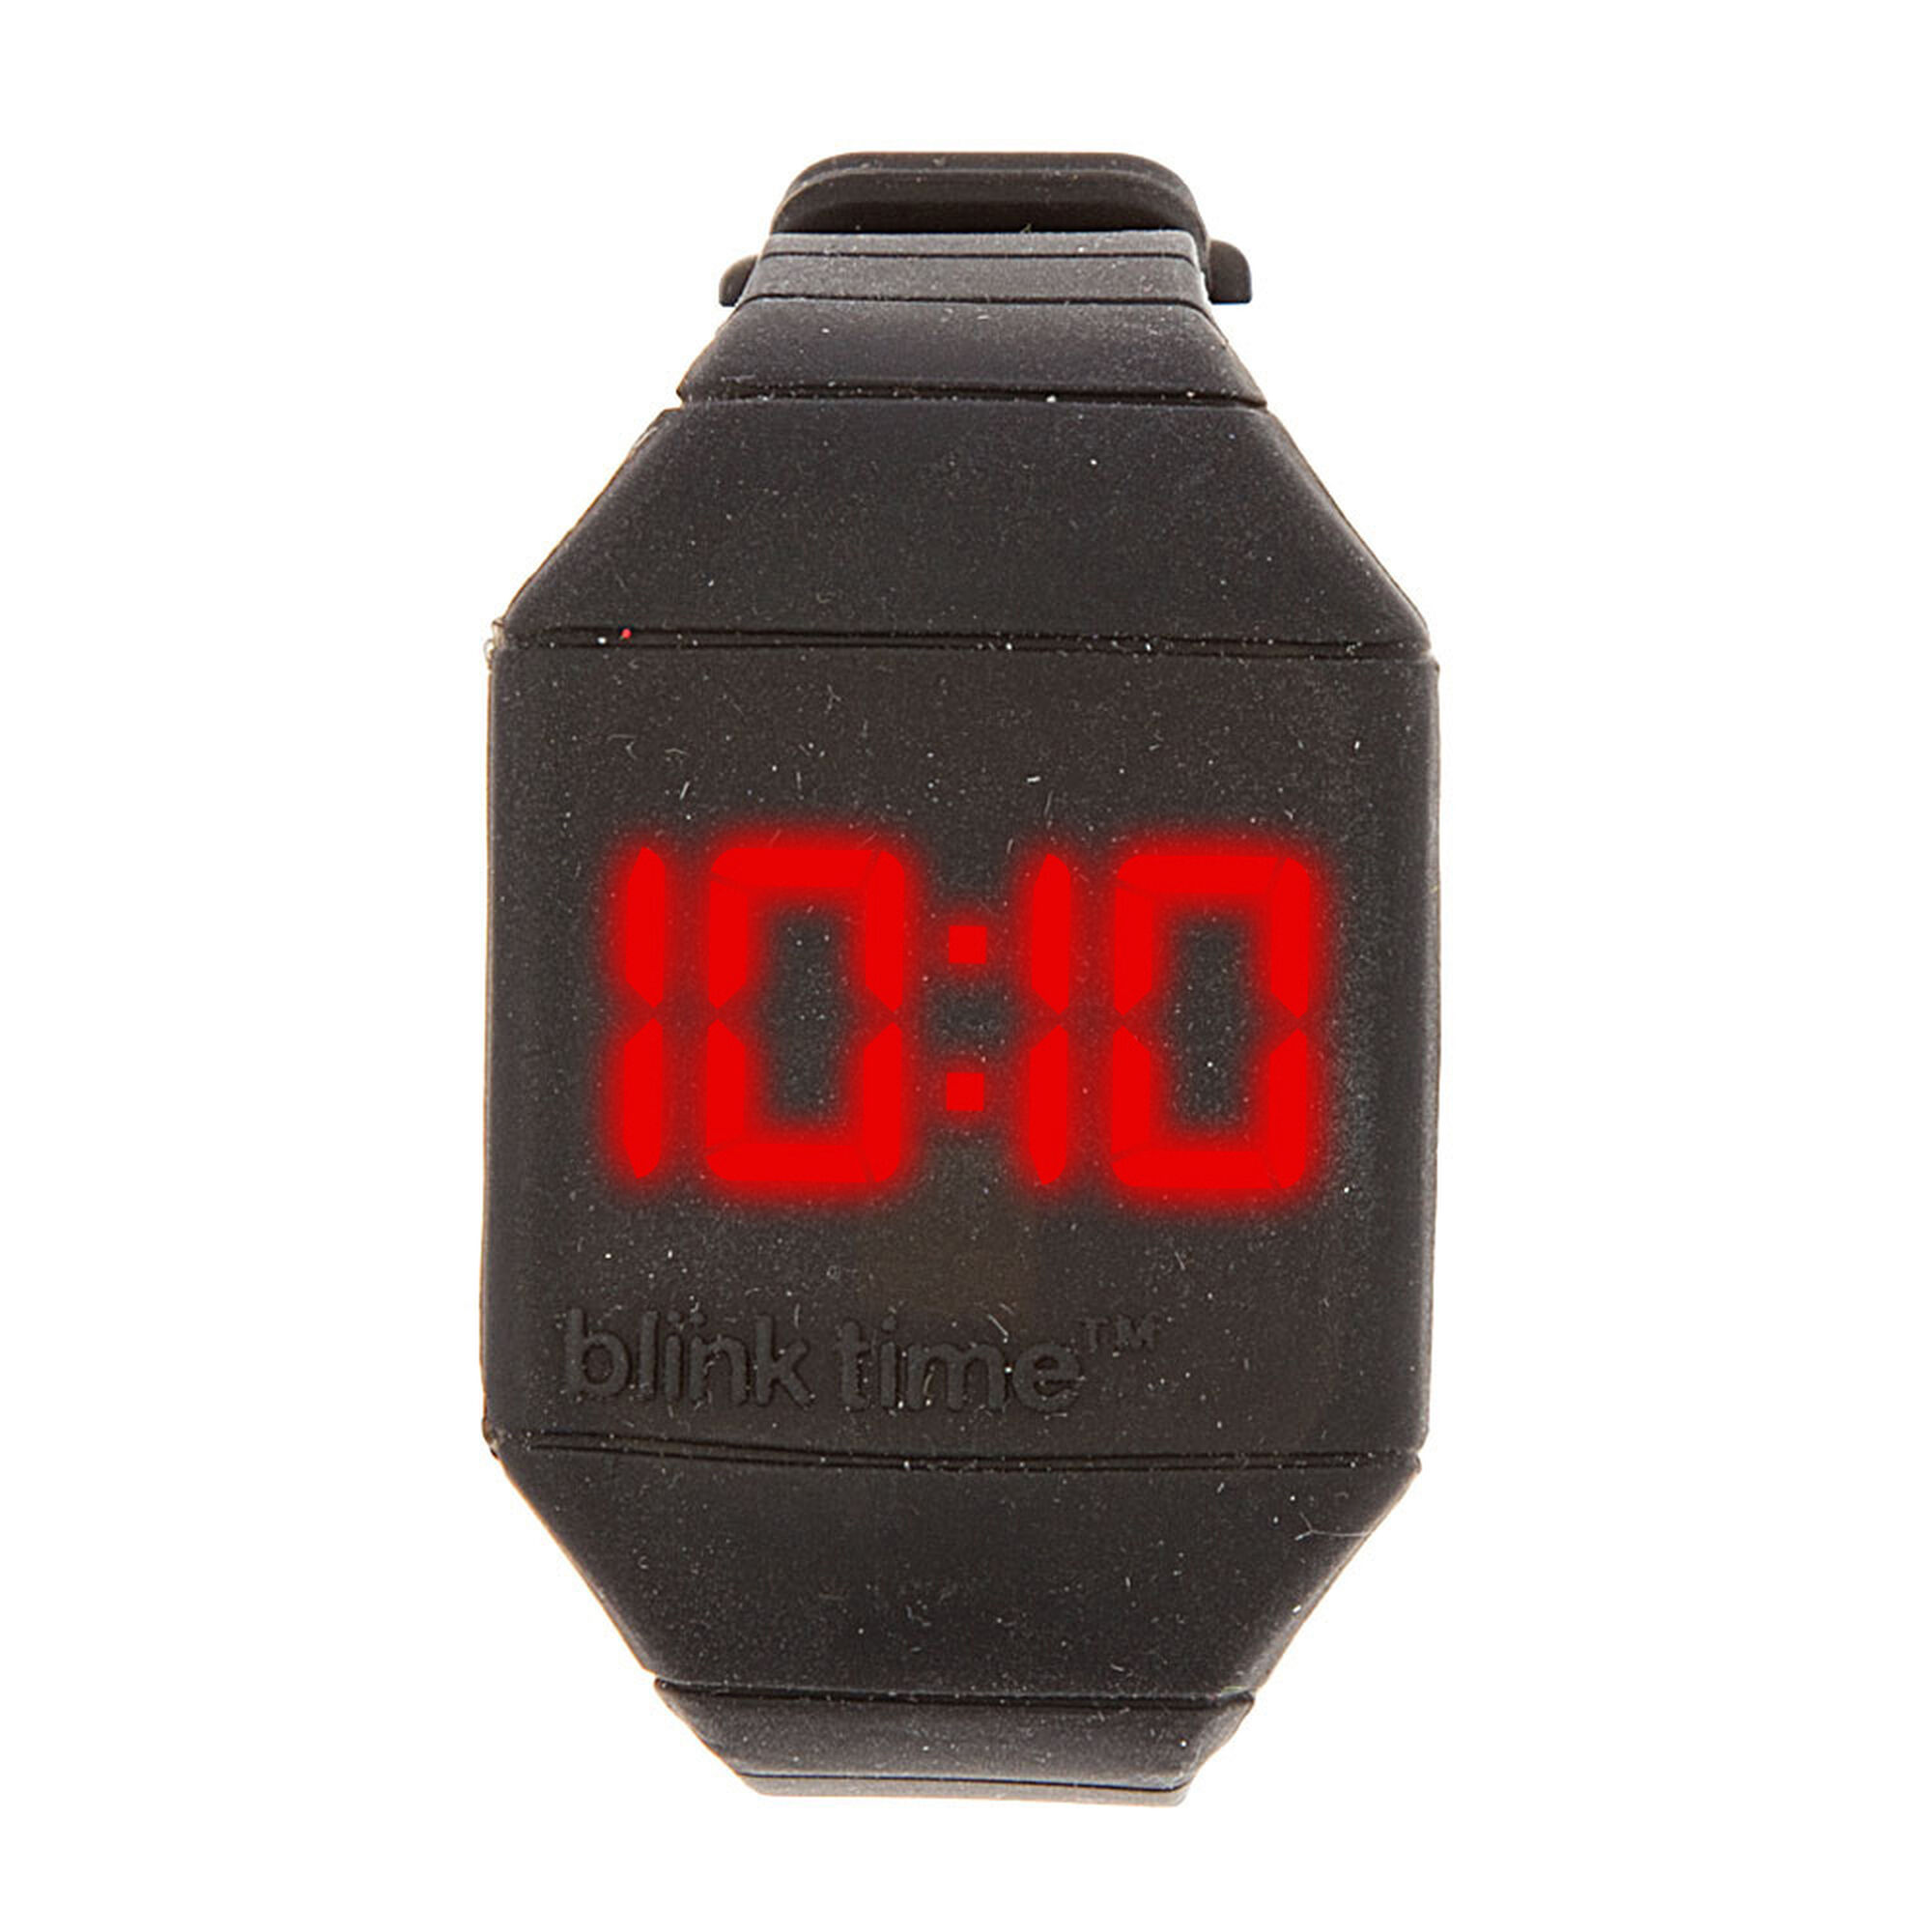 how to change time in led watch